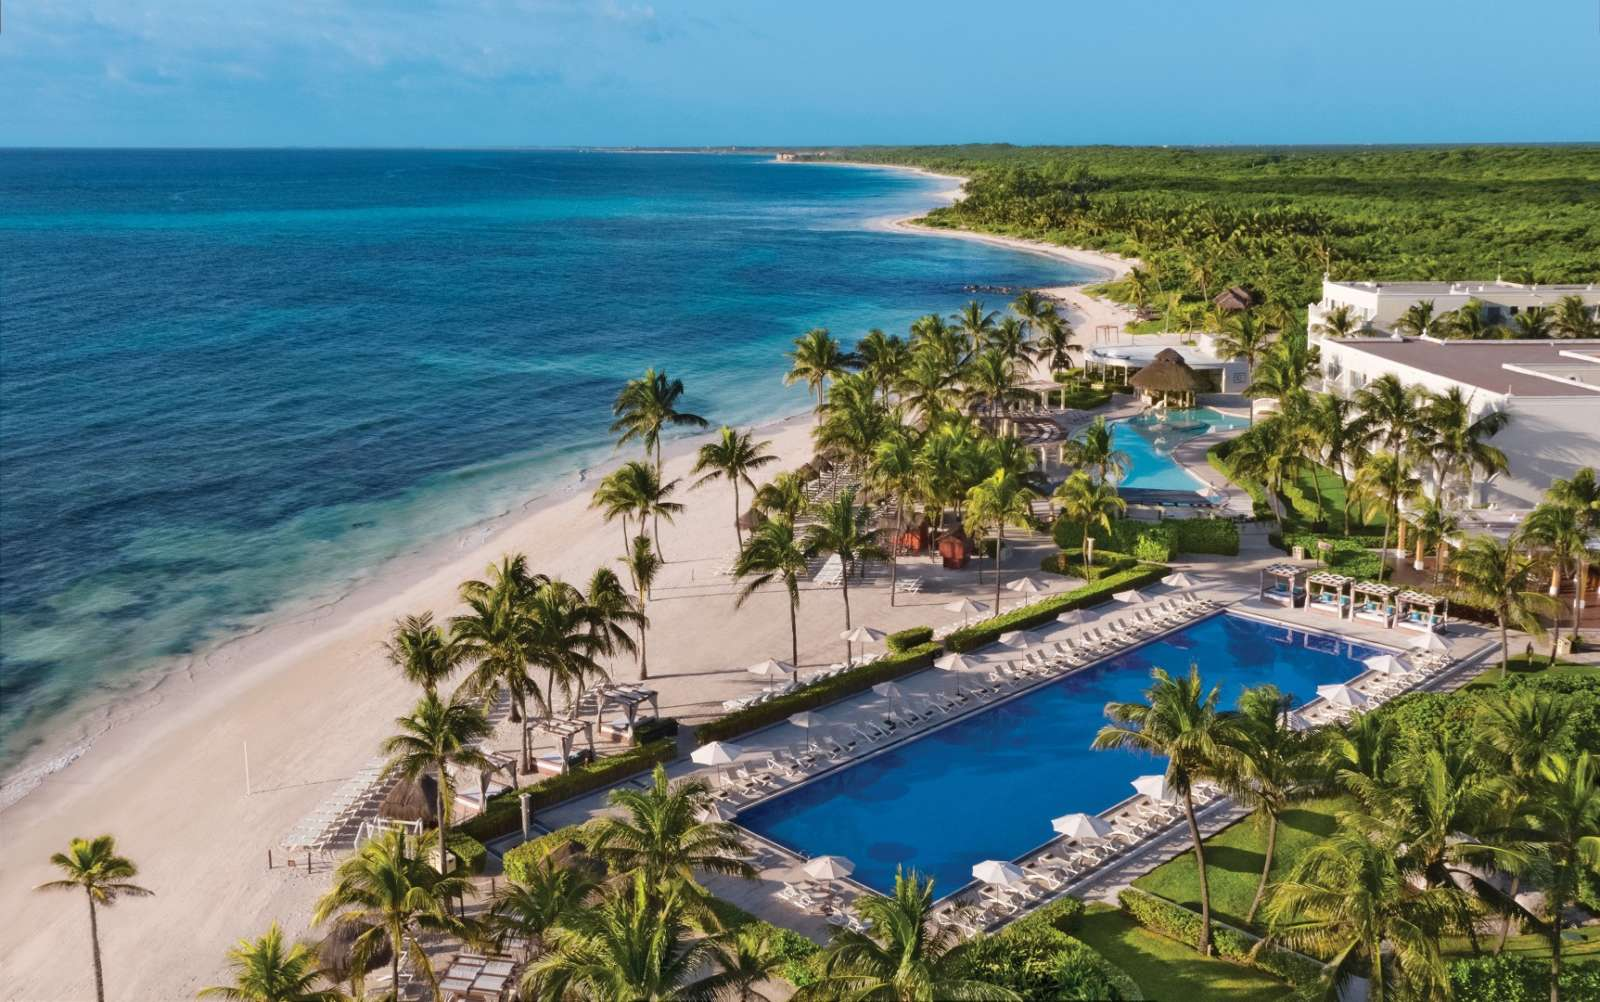 Aerial view of Dreams Tulum in Mexico